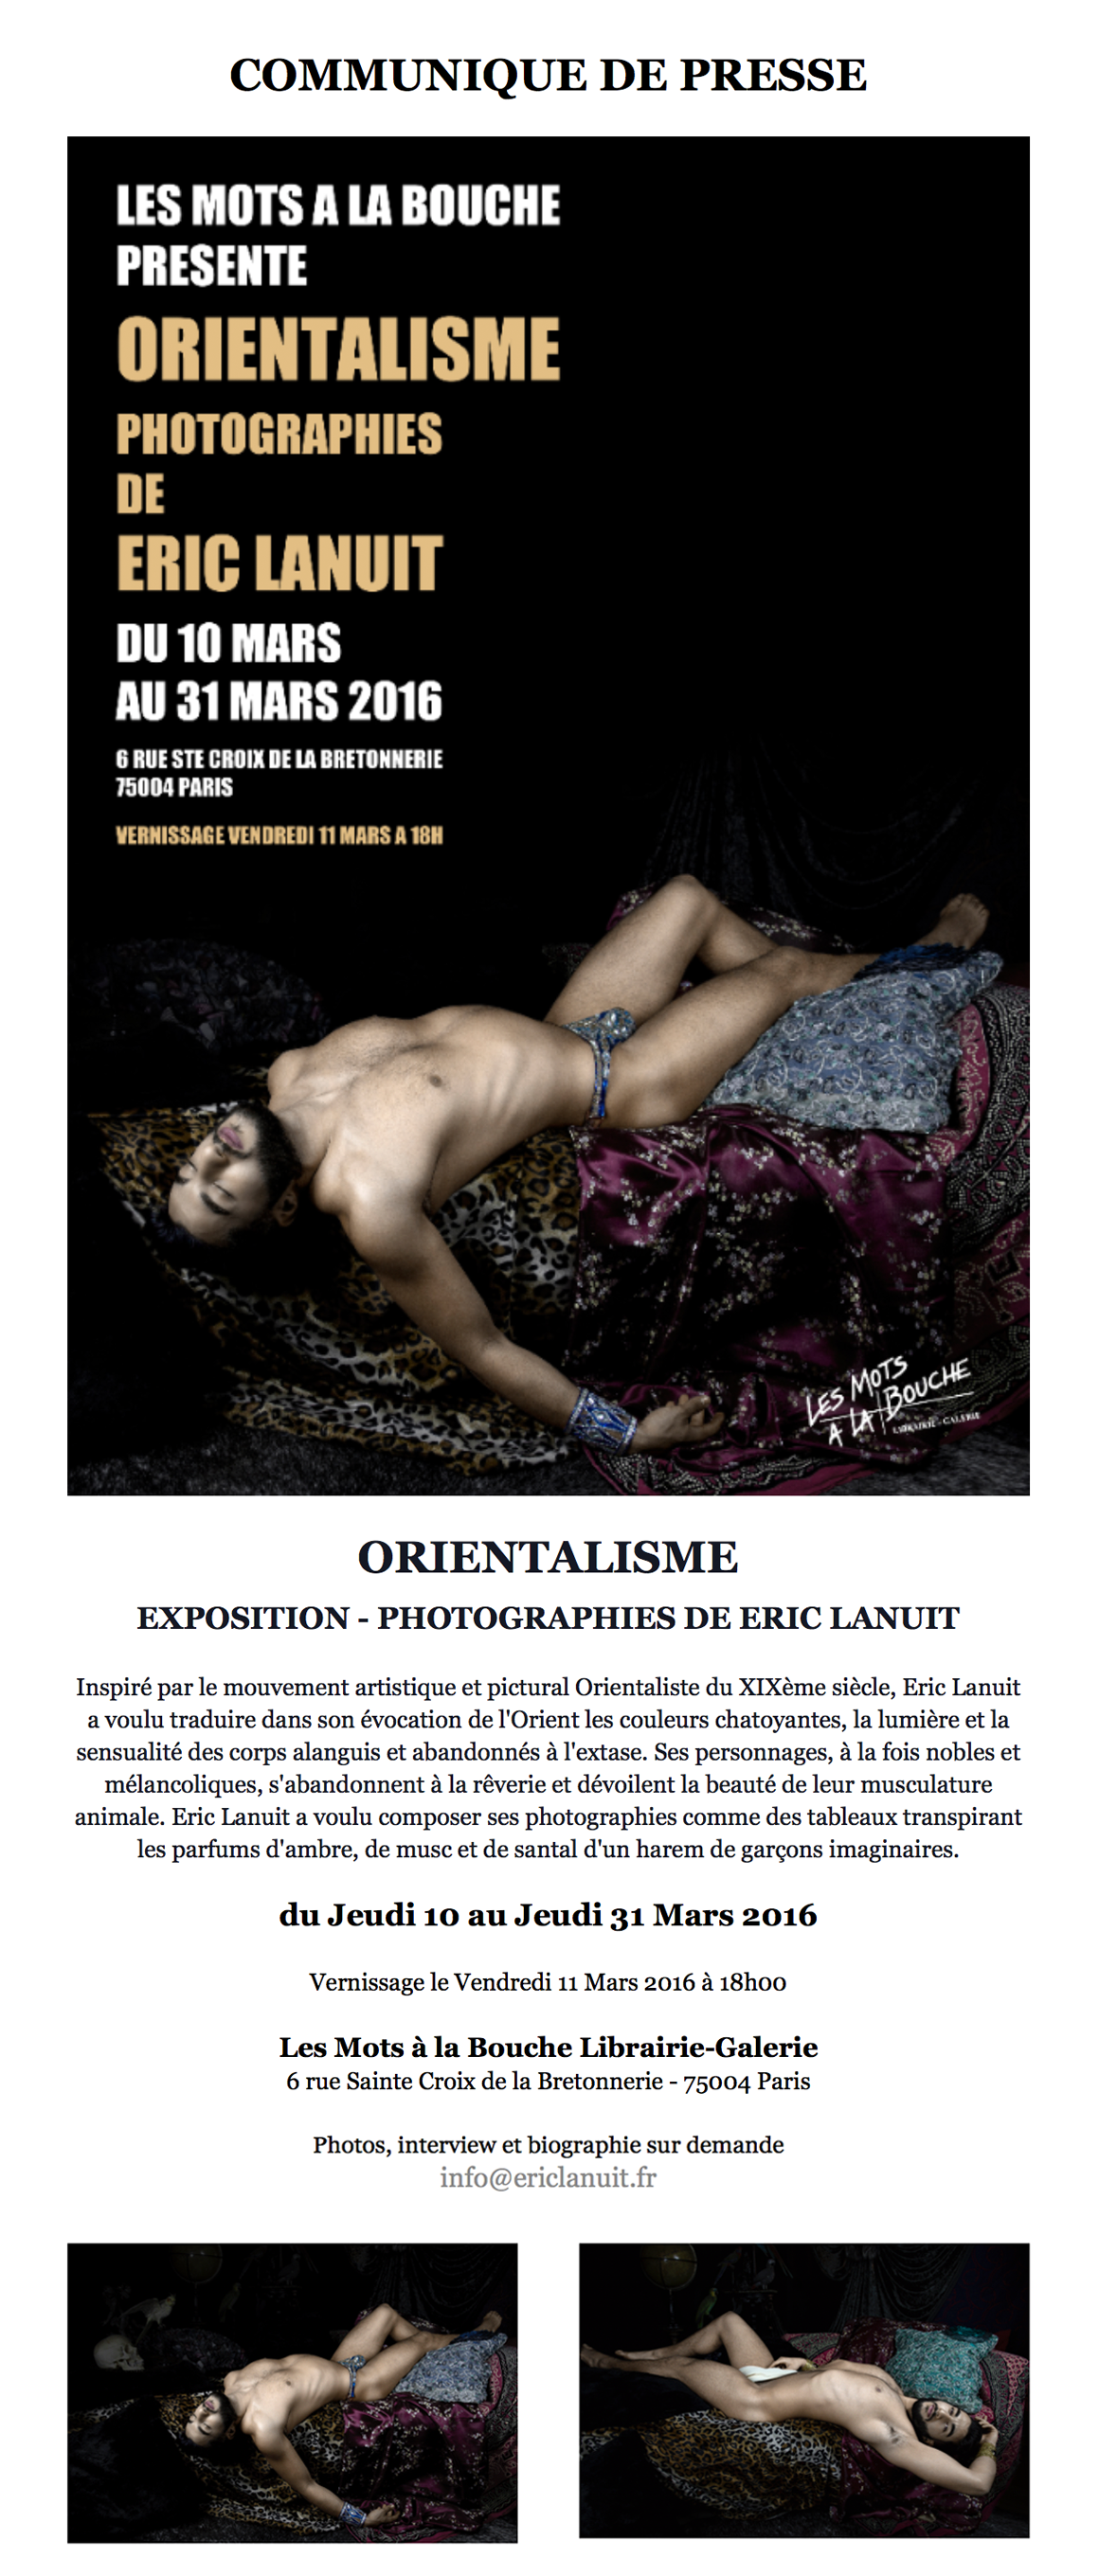 Orientalisme 2 by Eric Lanuit Exhibition